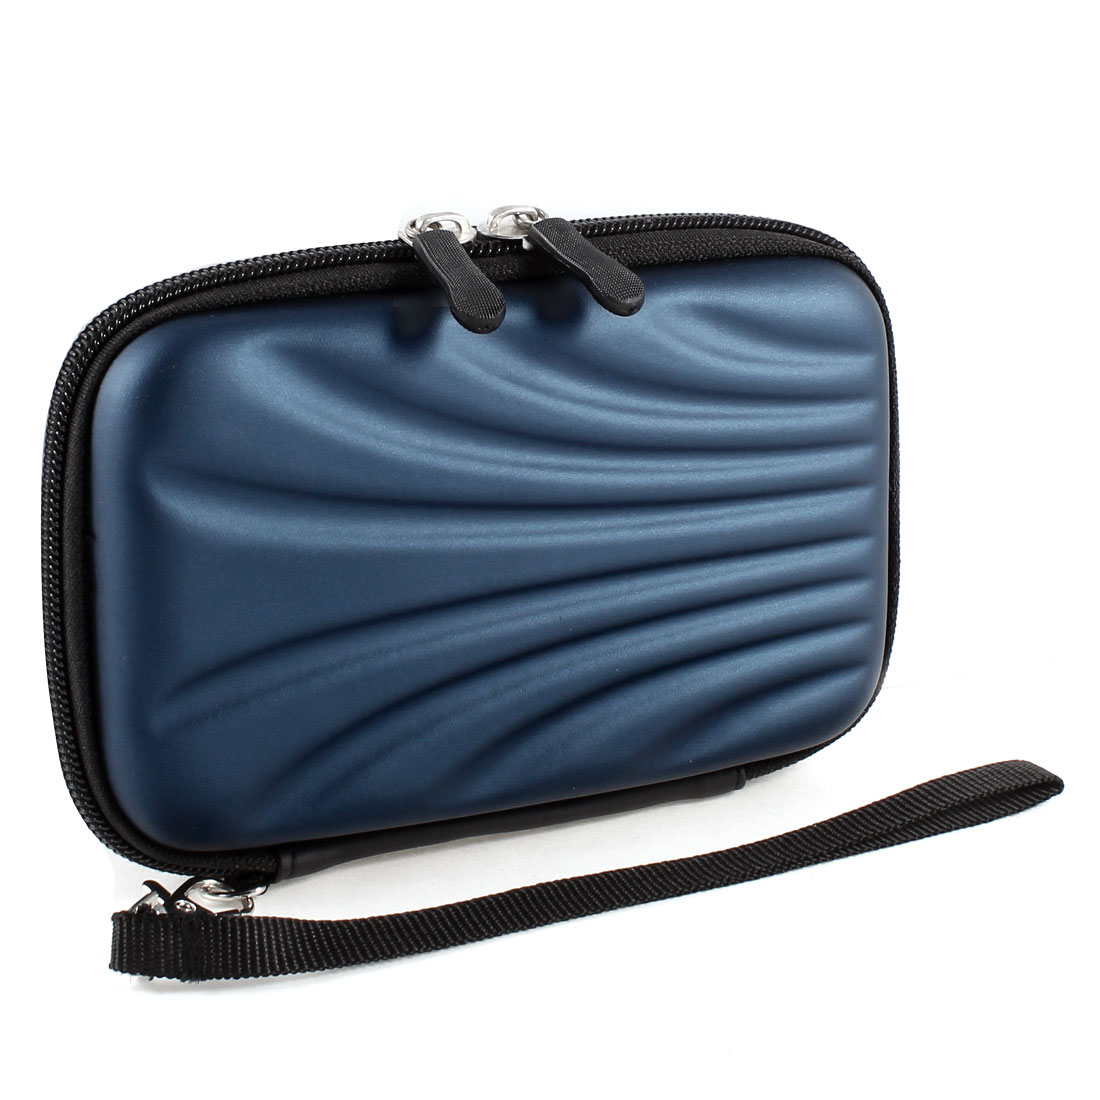 "Zip-up EVA Carrying Case Cover Sleeve Bag Dark Blue for 2.5"" Hard Drive Disk"